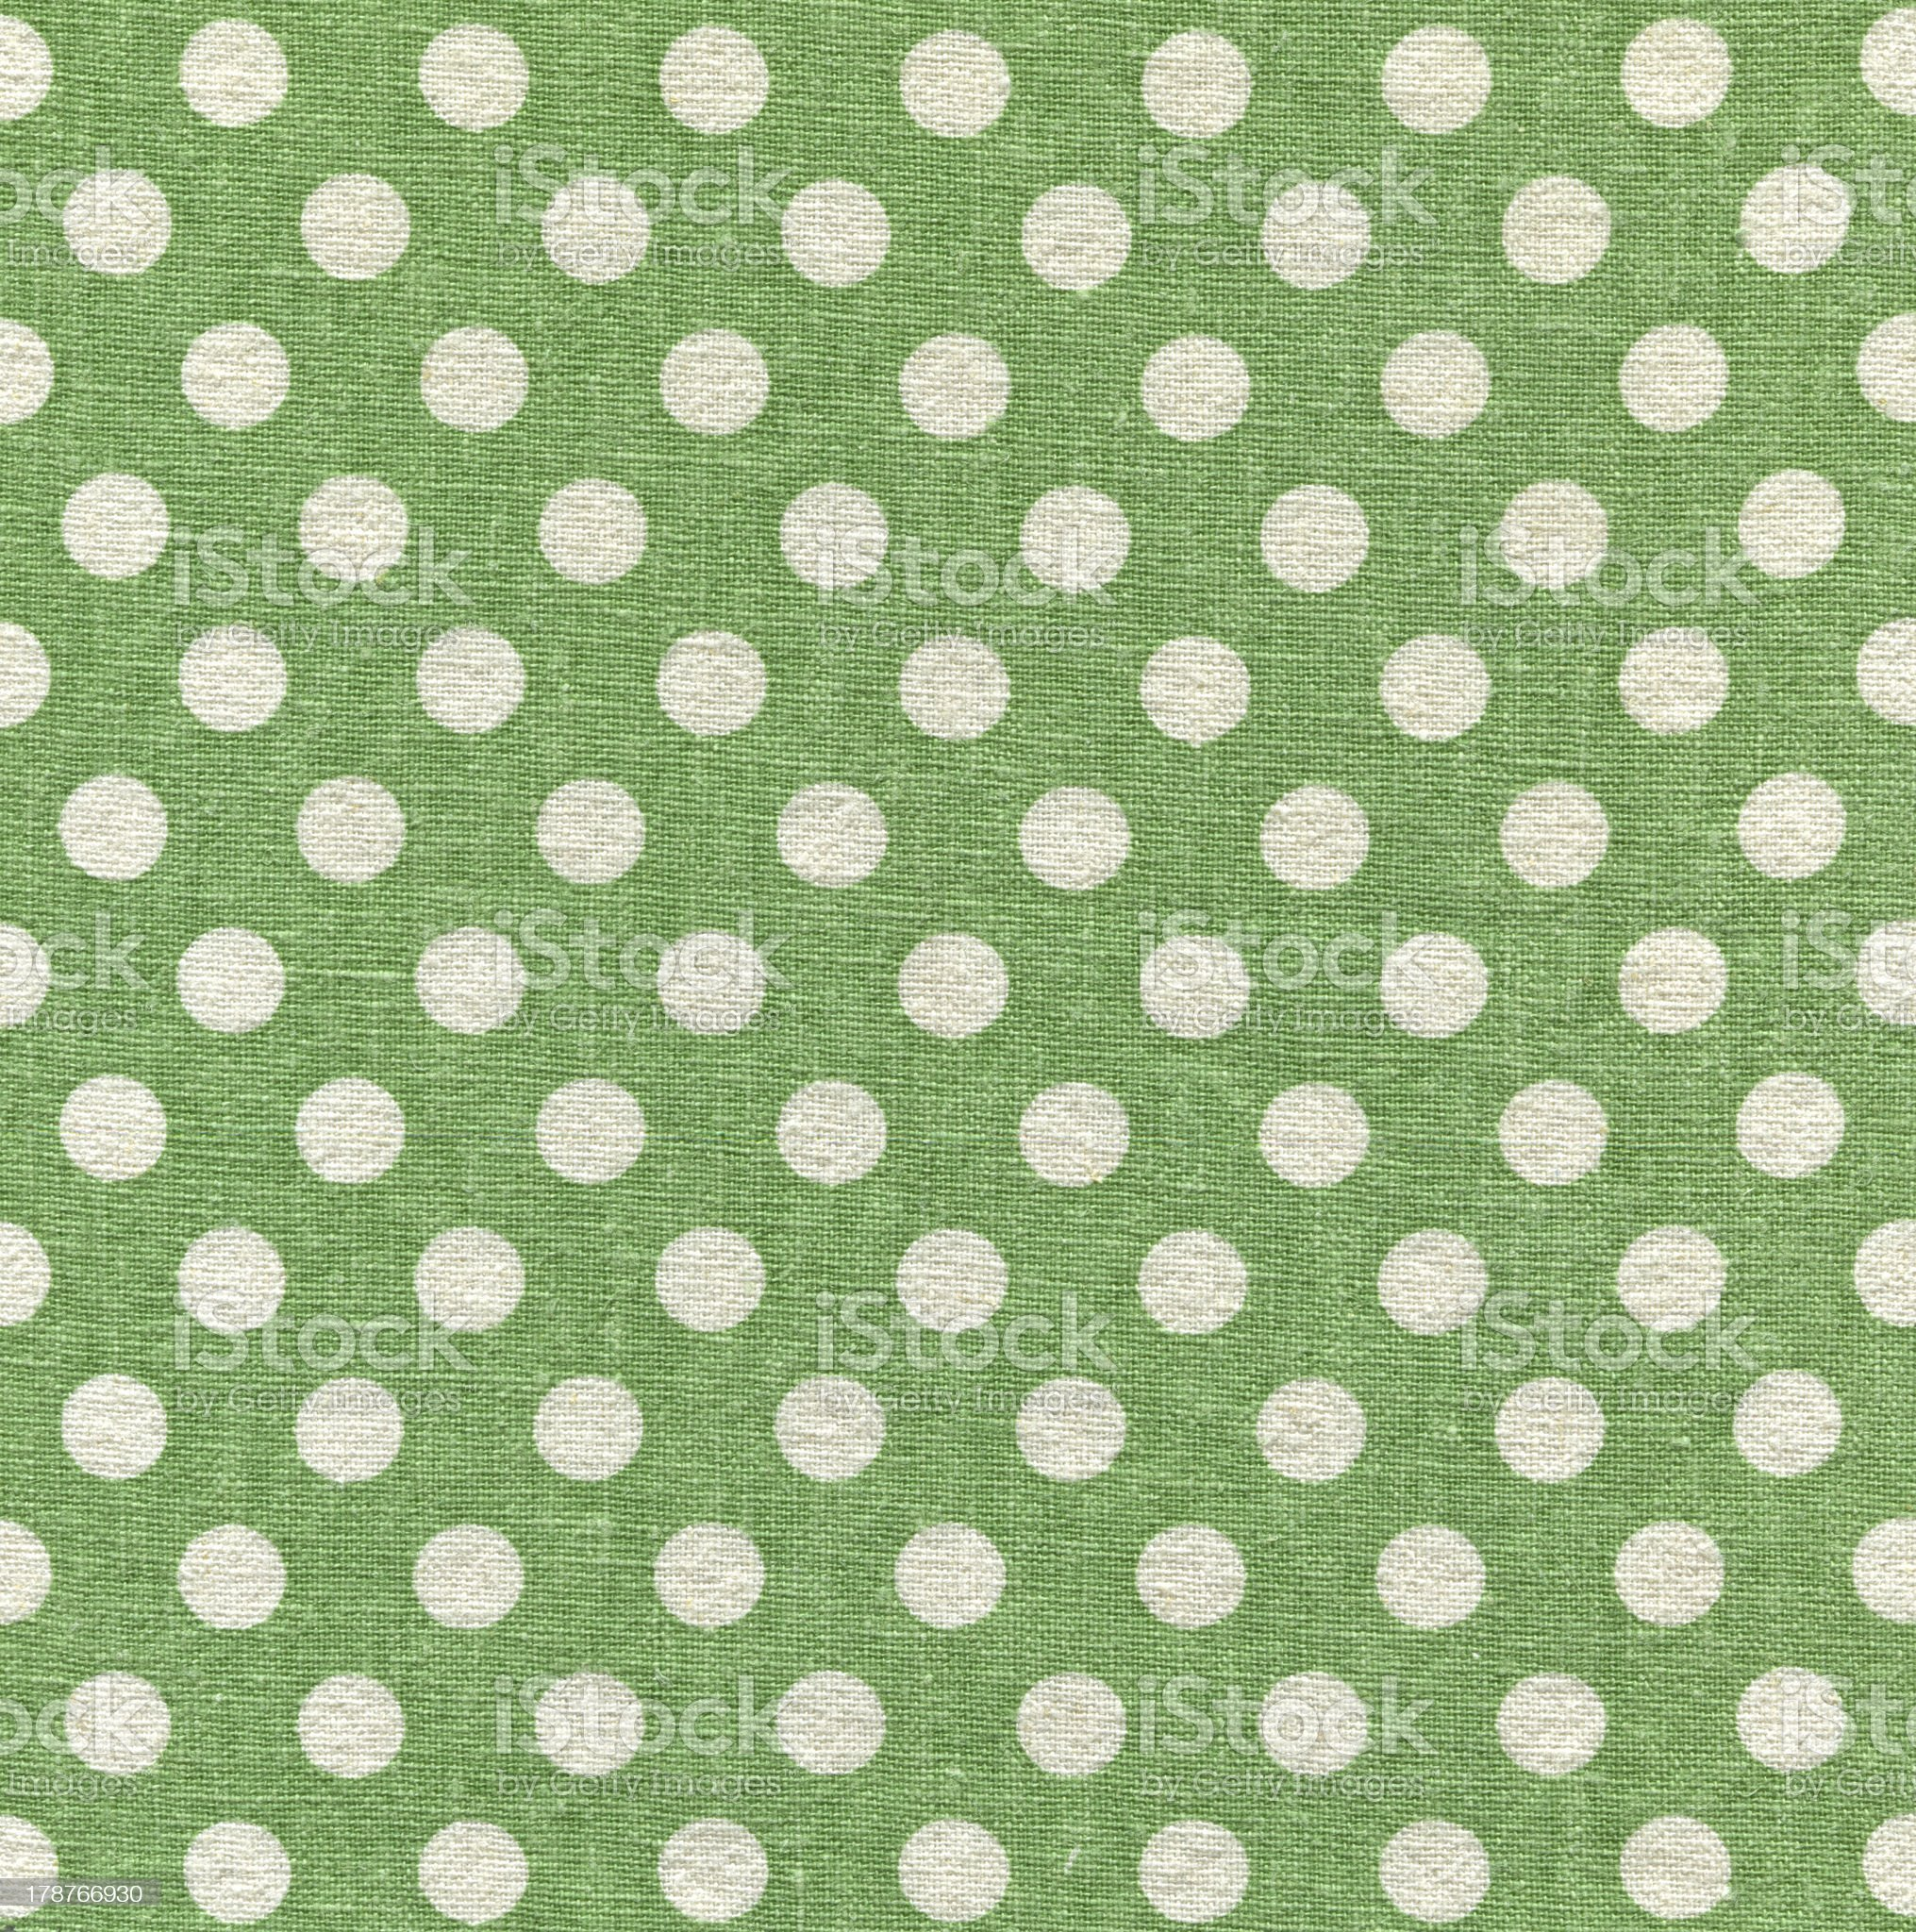 Ultra-high resolution-White circle and green texture background(Pixel:9554 x 9633) royalty-free stock photo